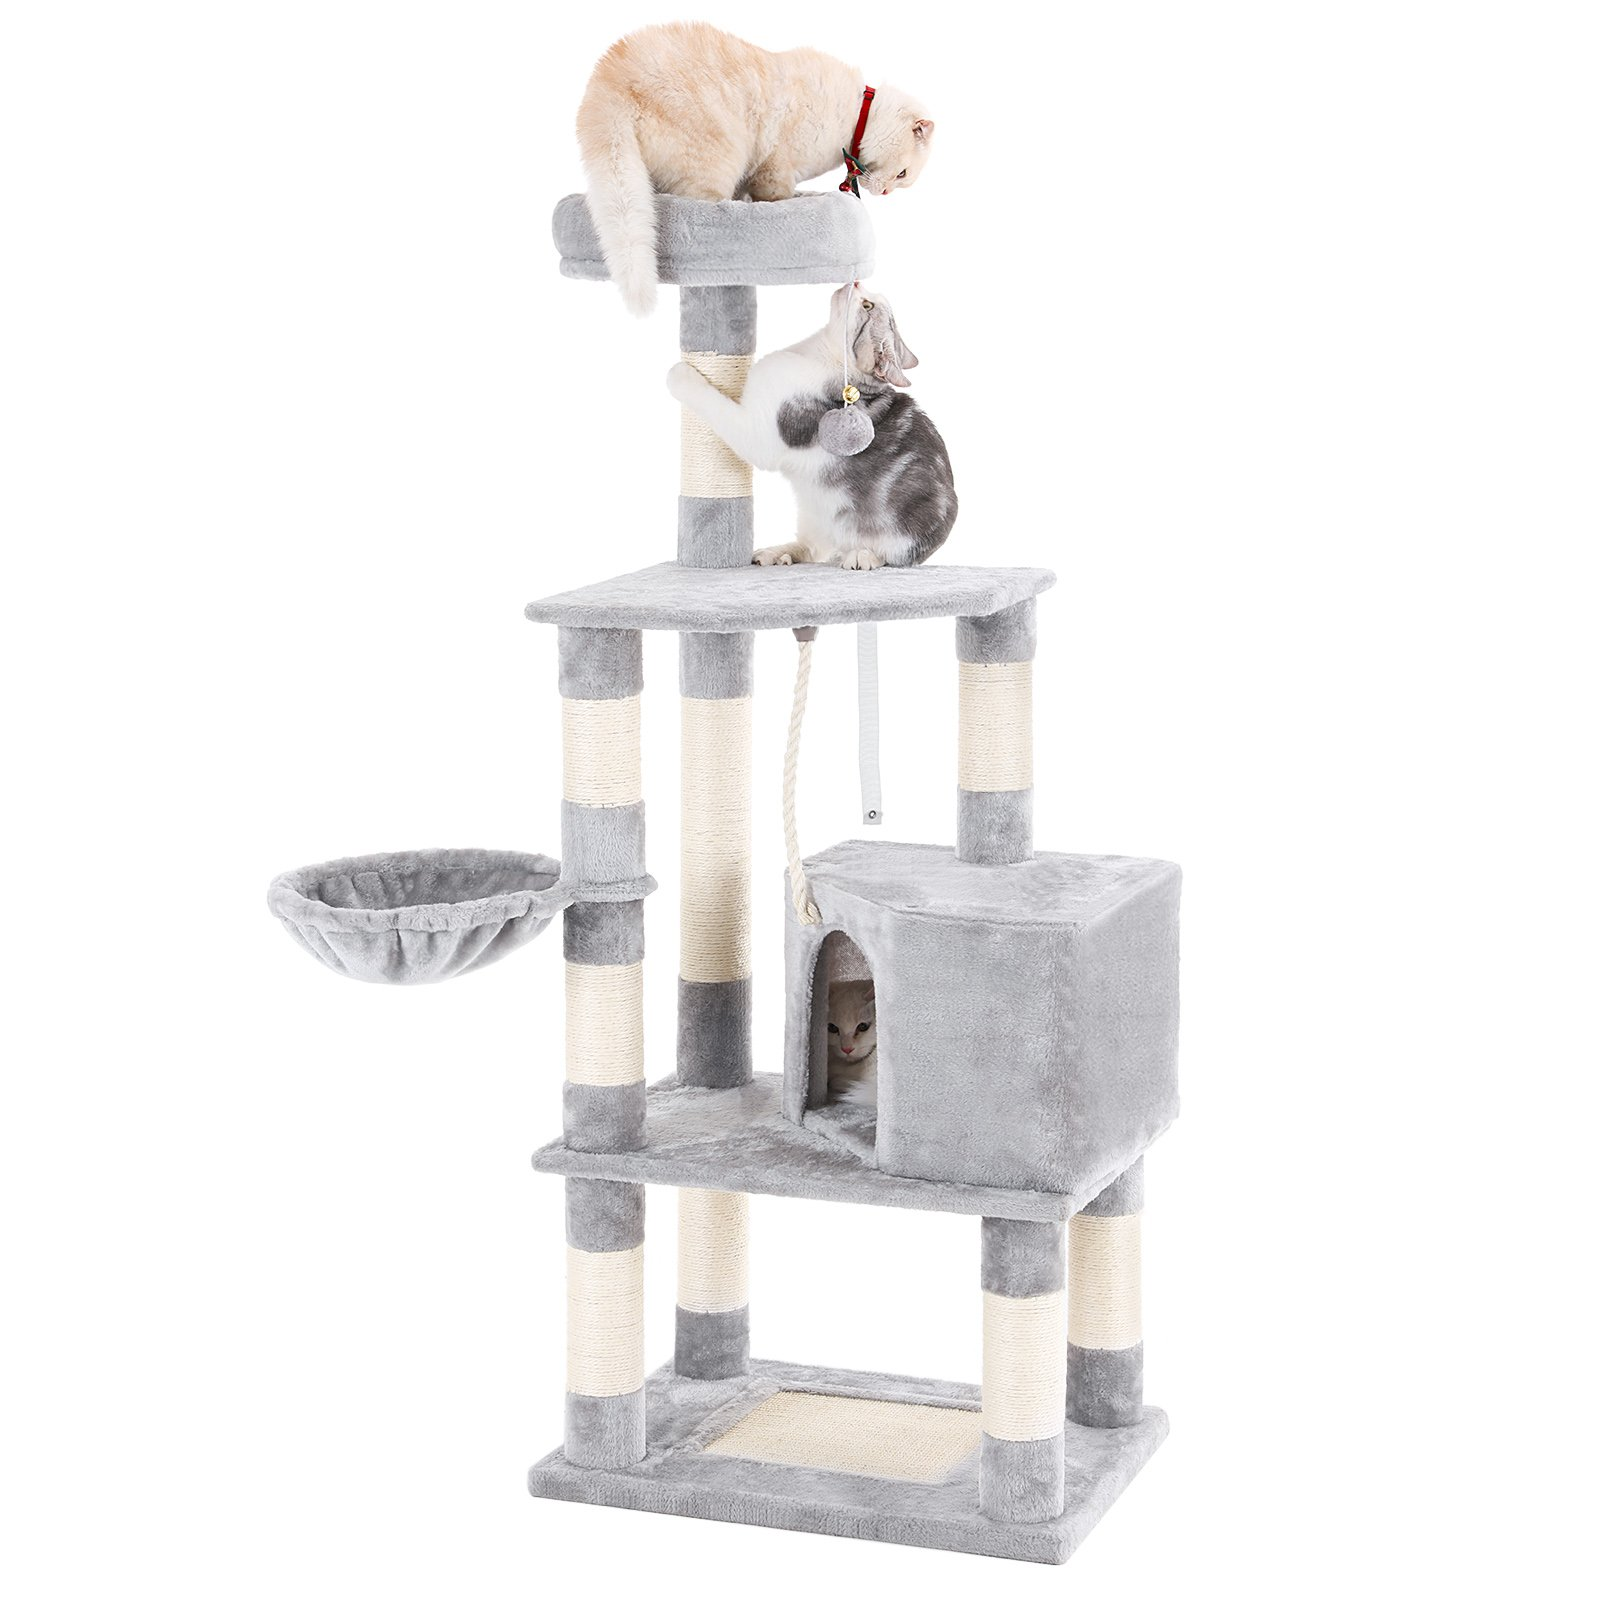 """SONGMICS 58"""" Multi-Level Cat Tree with Sisal-Covered Scratcher, Scratching Posts, Plush Perches, Basket and Condo,Cat Tower Furniture - for Kittens, Cats and Pets UPCT60H"""